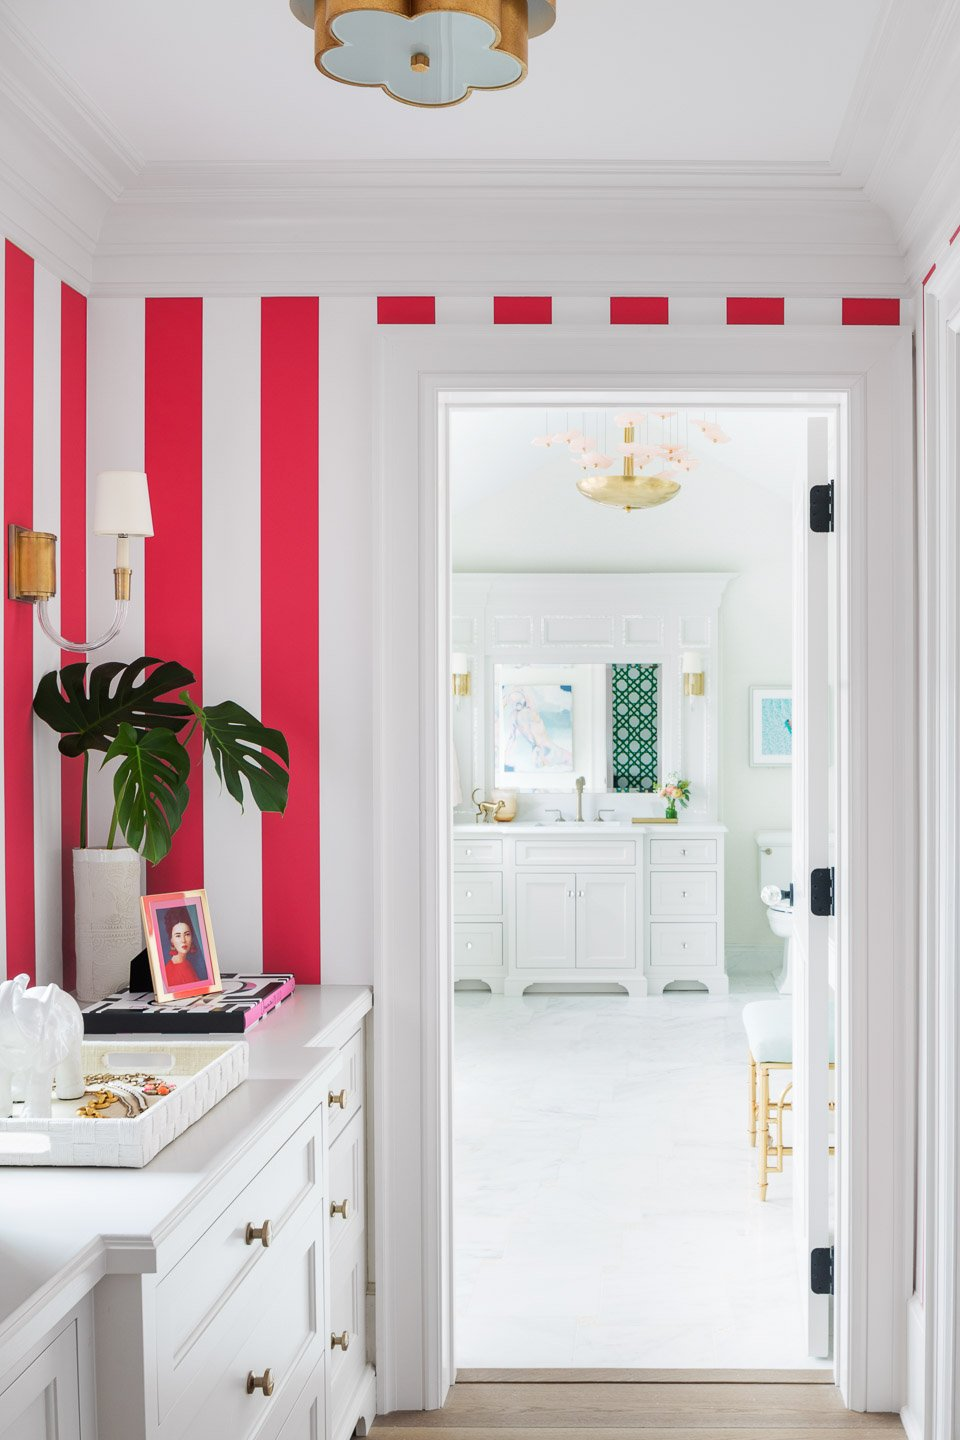 Blakely Interior Design | The Jersey Palm Project | Dressing Room and Bathroom